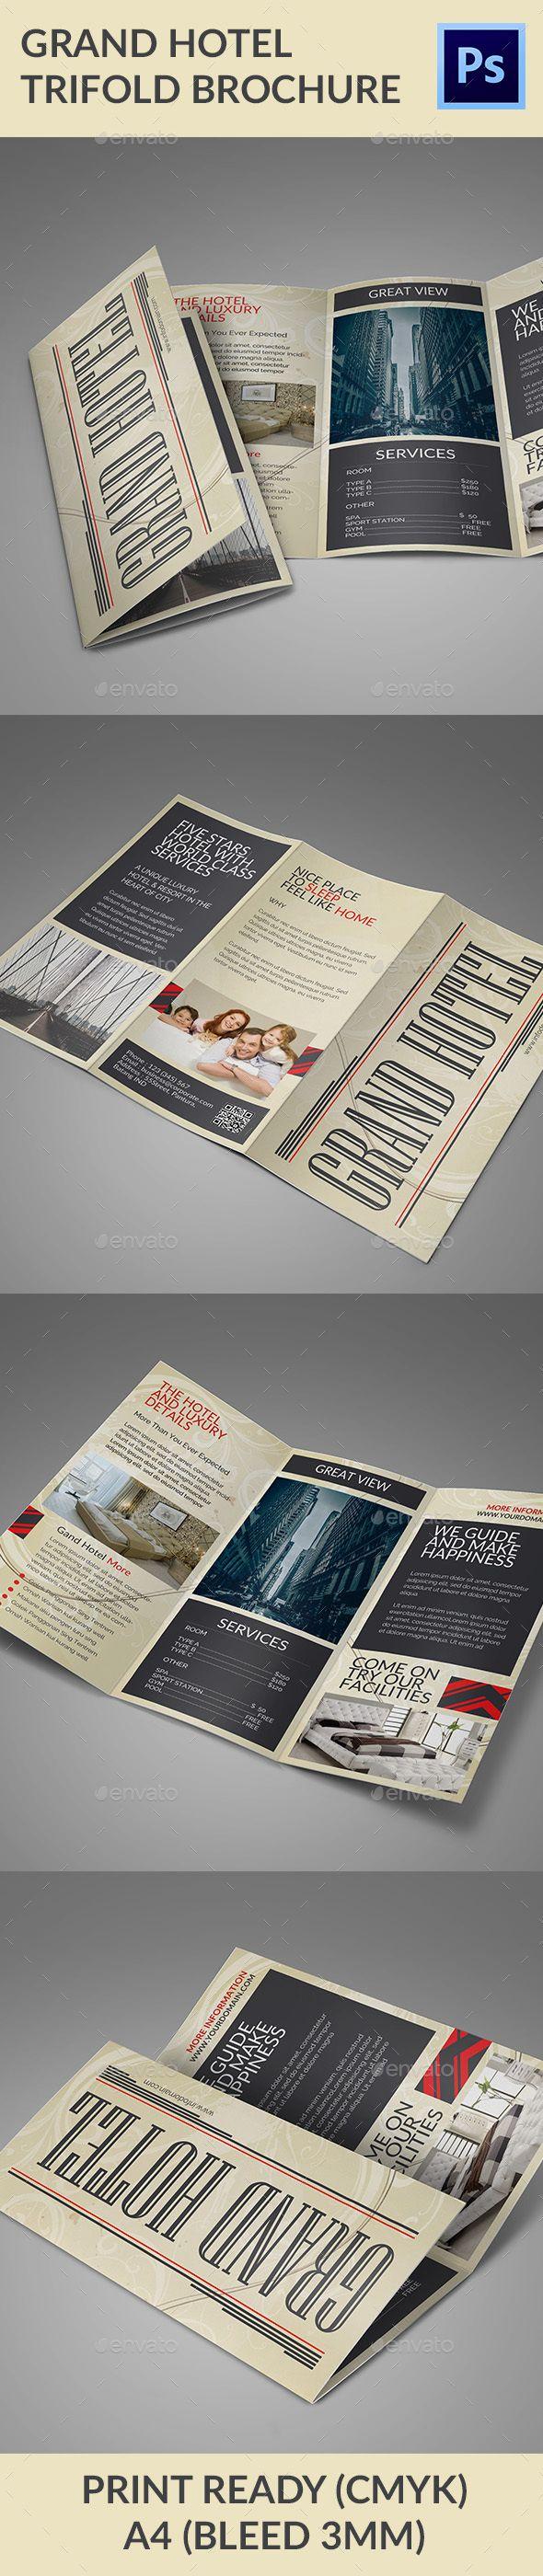 Grand Hotel Trifold Brochure | Grand hotel, Brochure template and ...